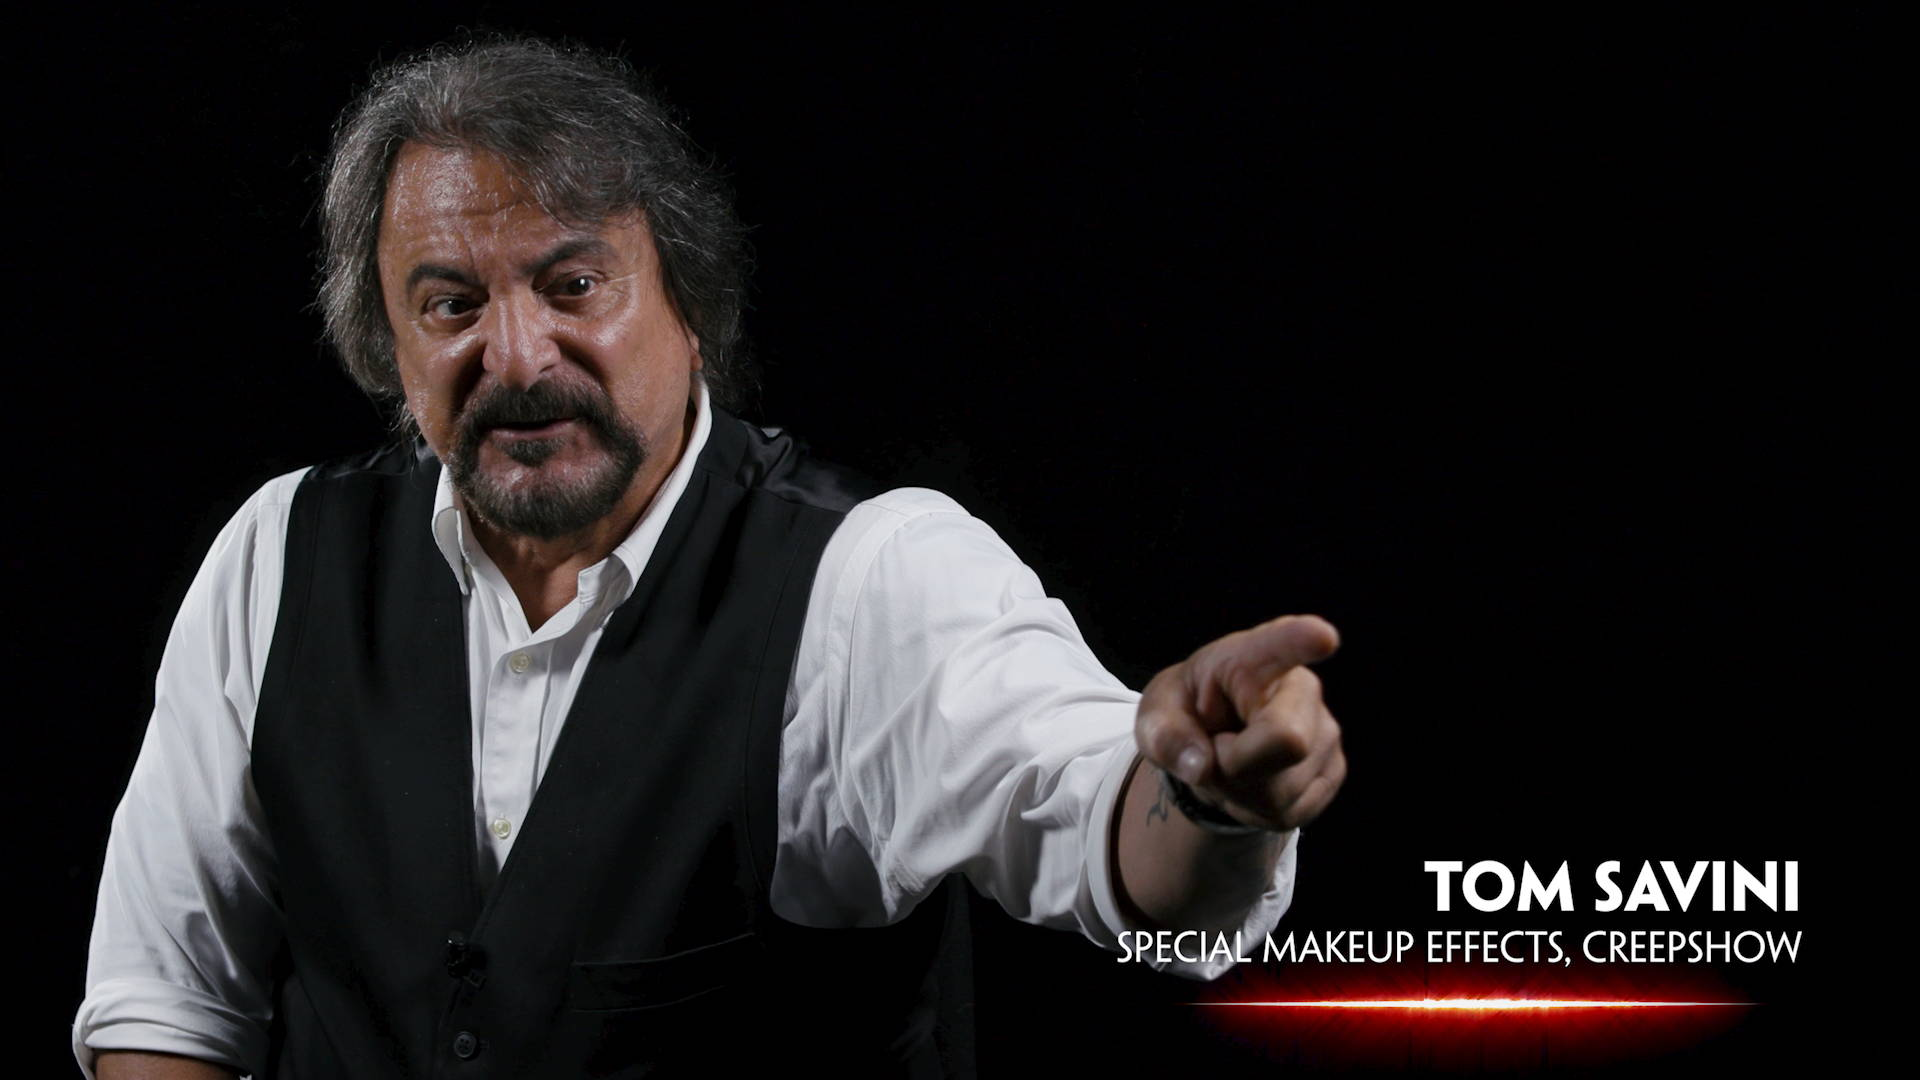 In Search of Darkness Part II: Tom Savini interview